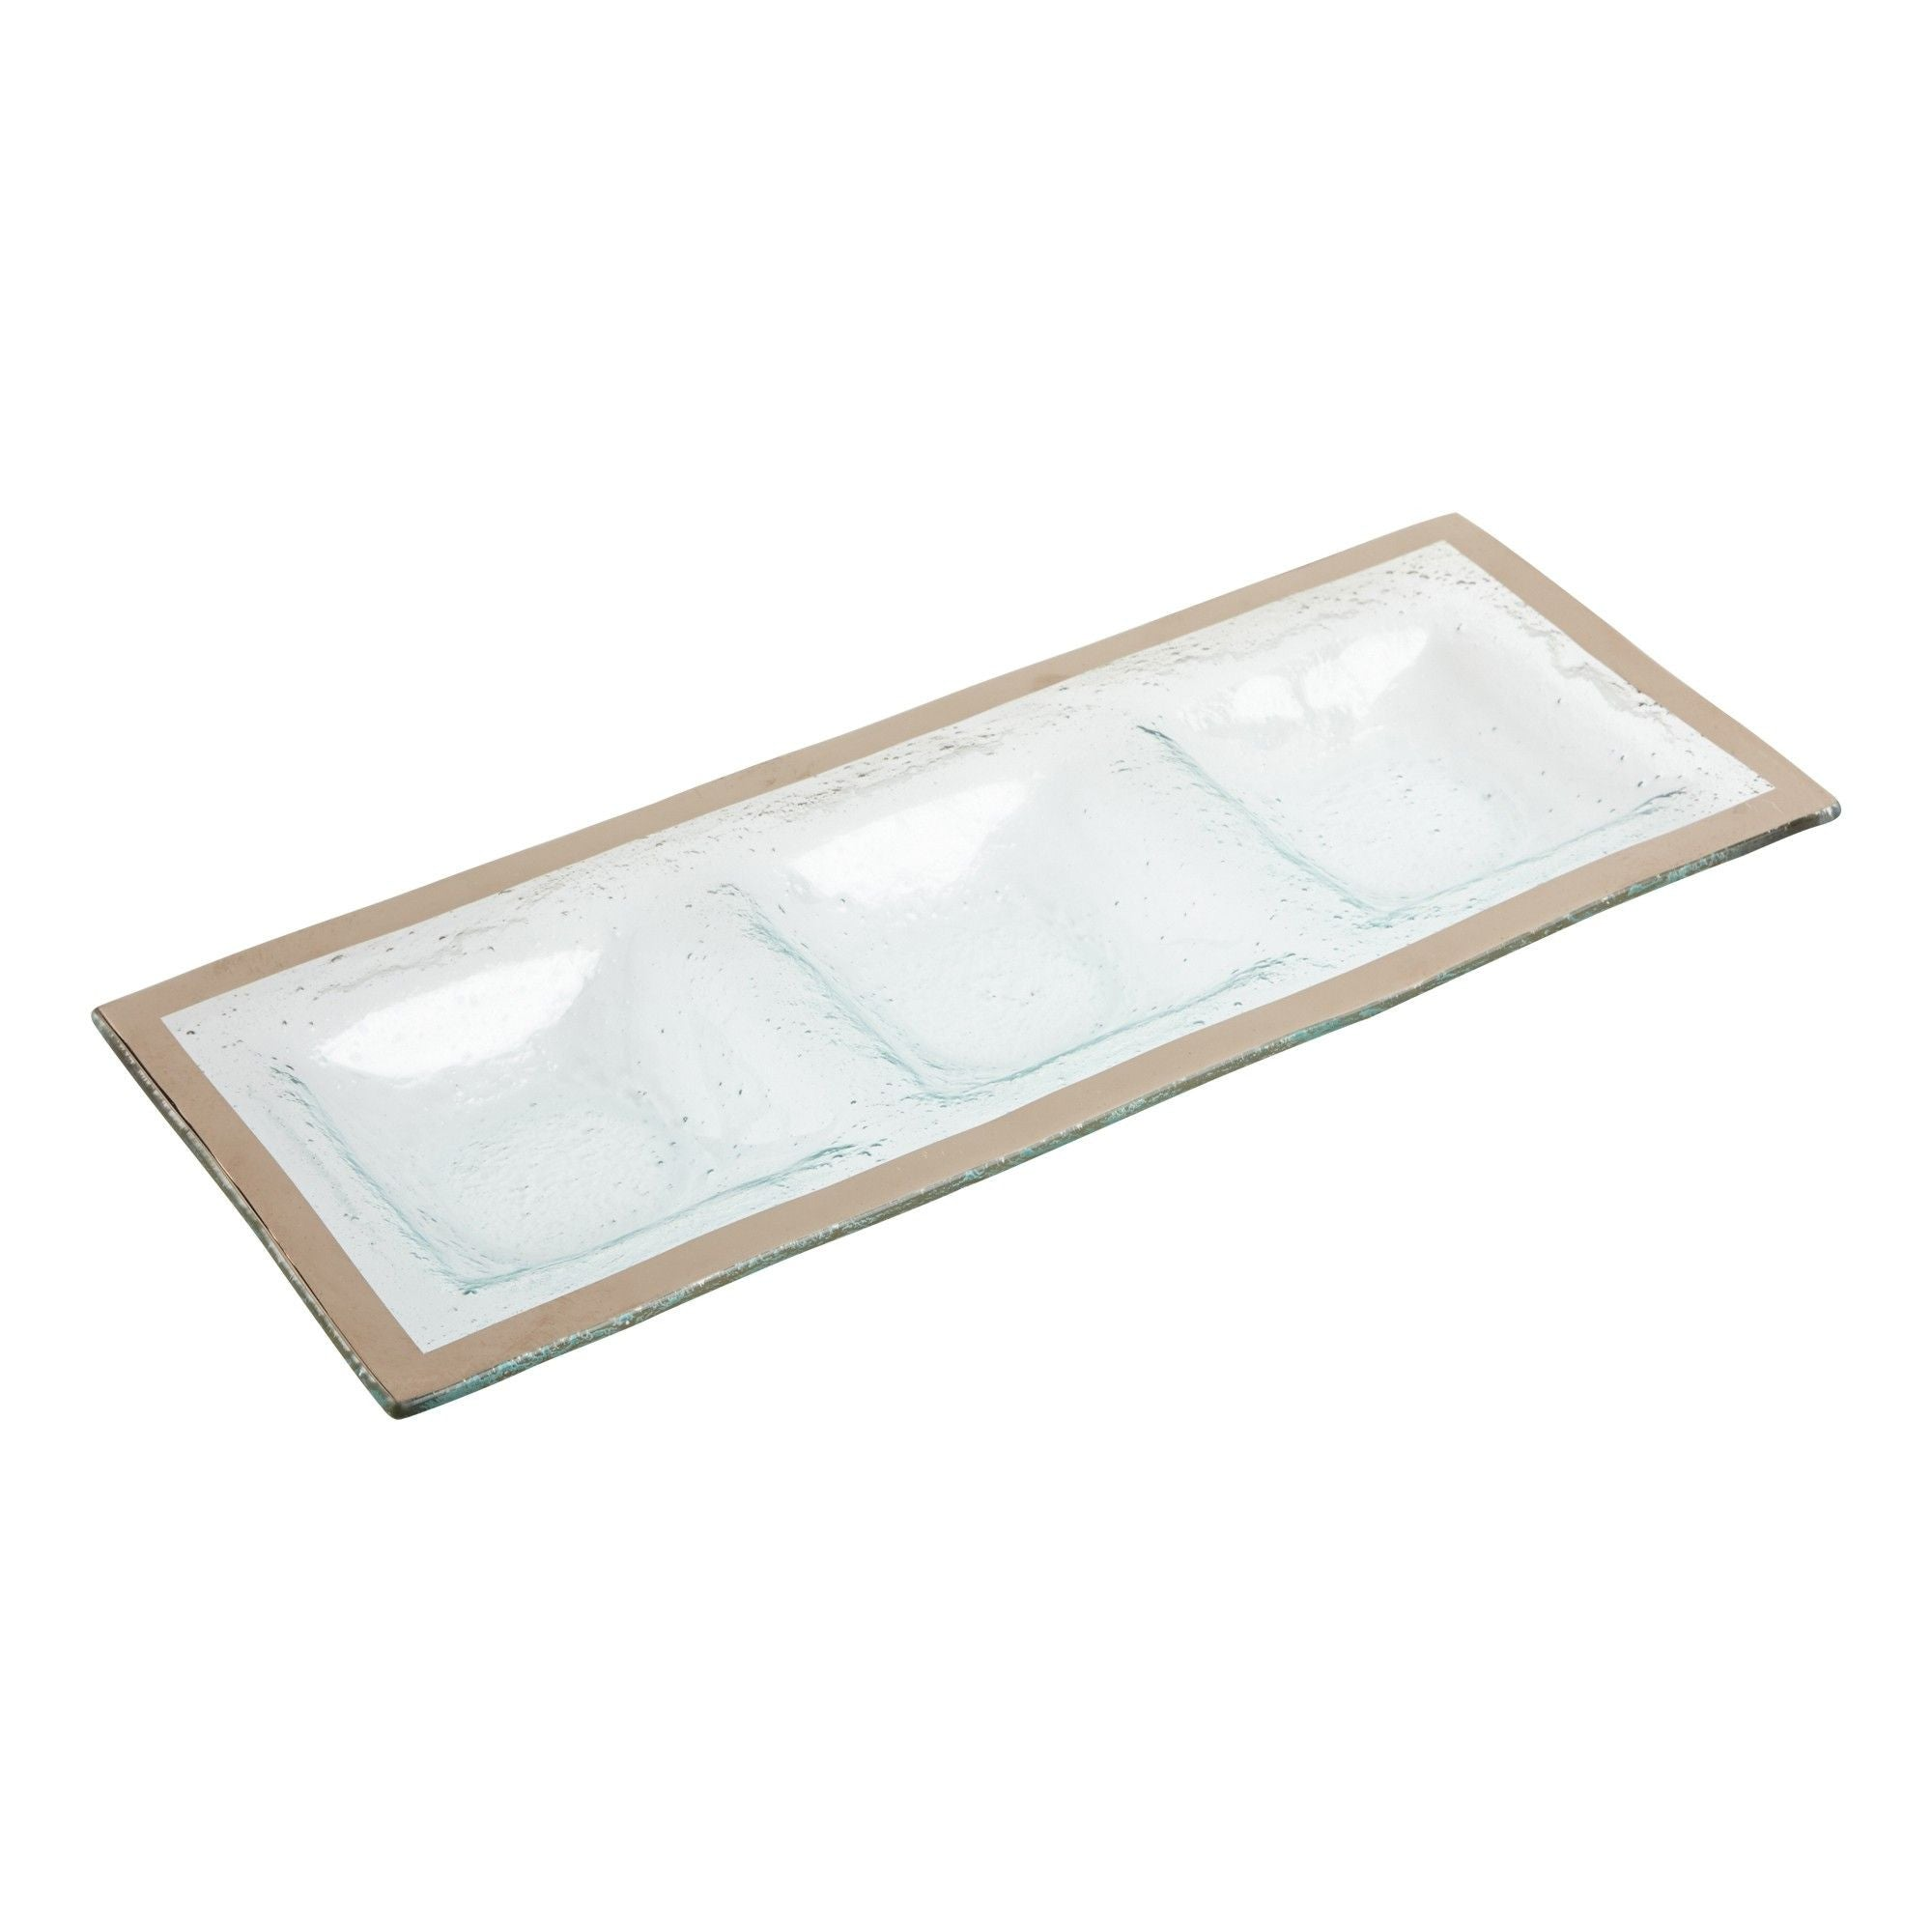 Roman Antique Platinum Three Section Tray